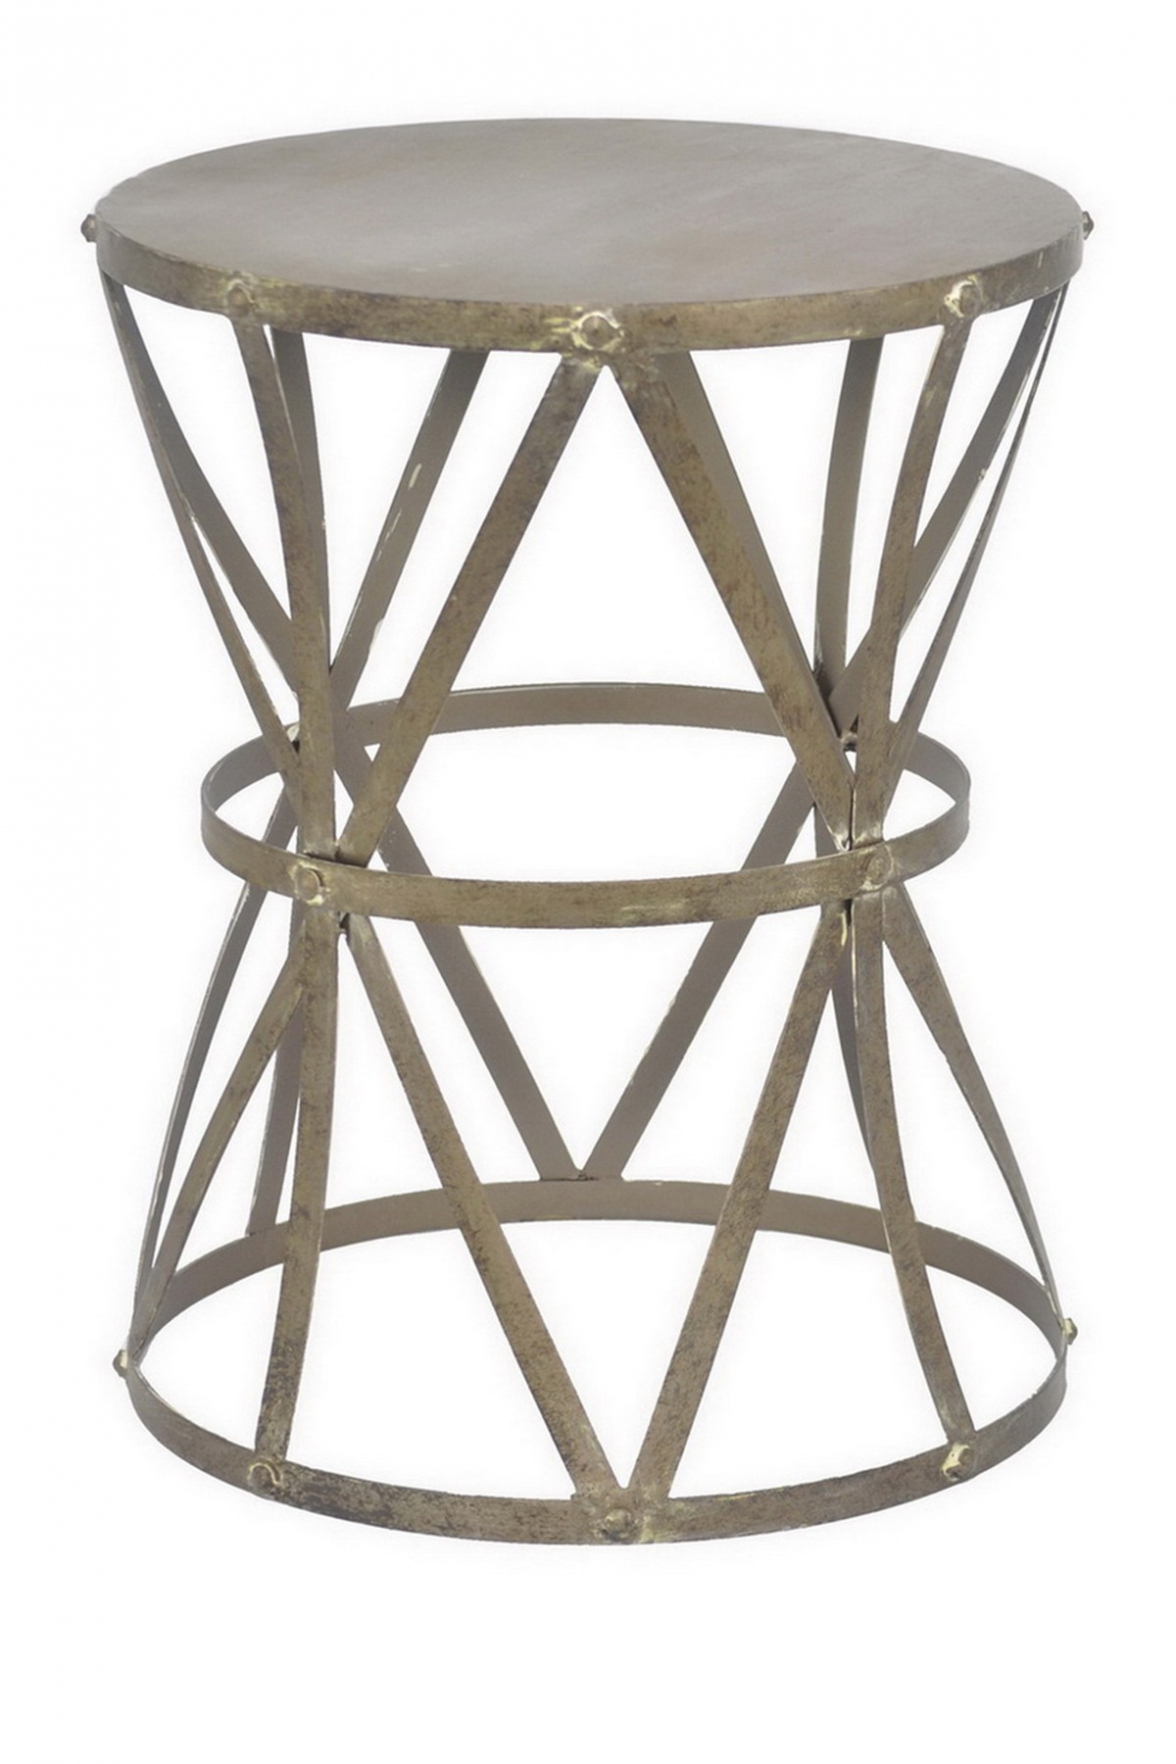 furniture three hands anti bras metal accent table nordstrom rack homepop spectacular applied your residence design waterproof vintage gold coffee threshold transition sheesham